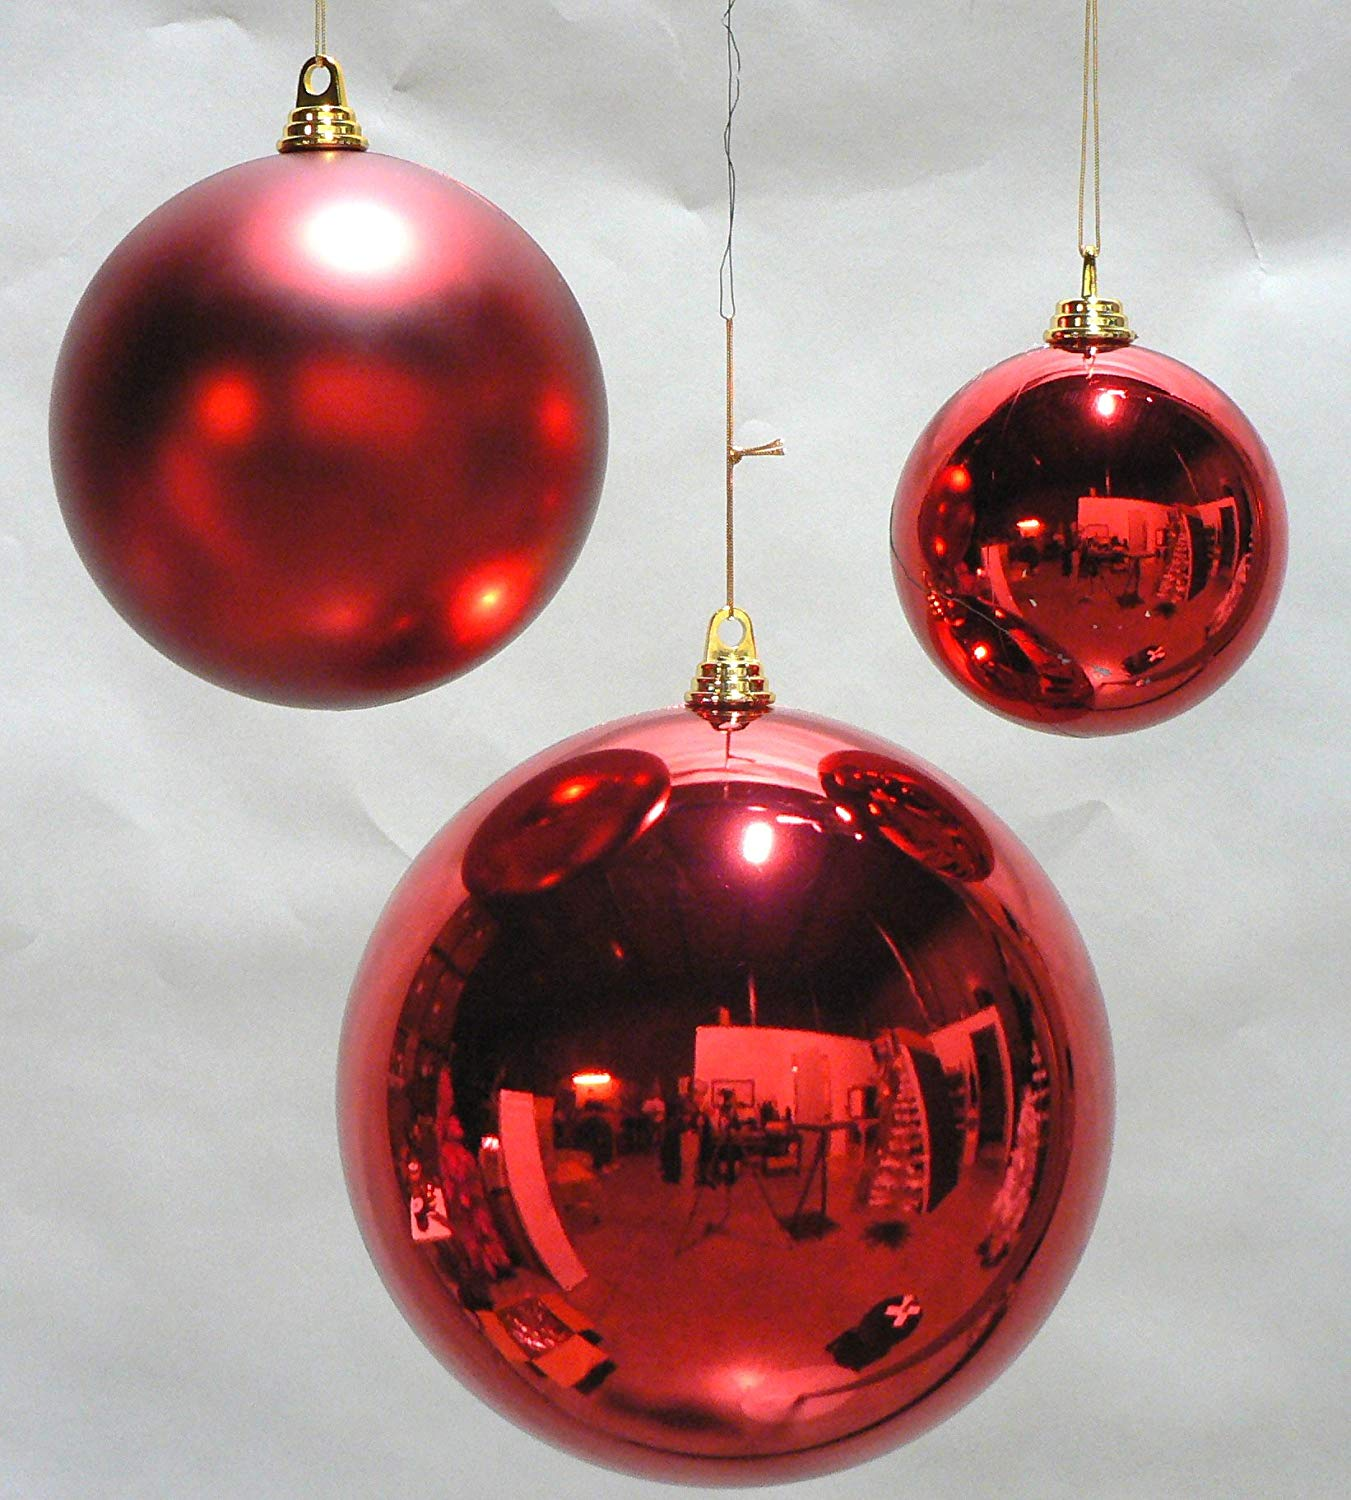 Amazon.com: 2 Large Shiny Red Christmas Ball Ornaments 12inch TWO ...